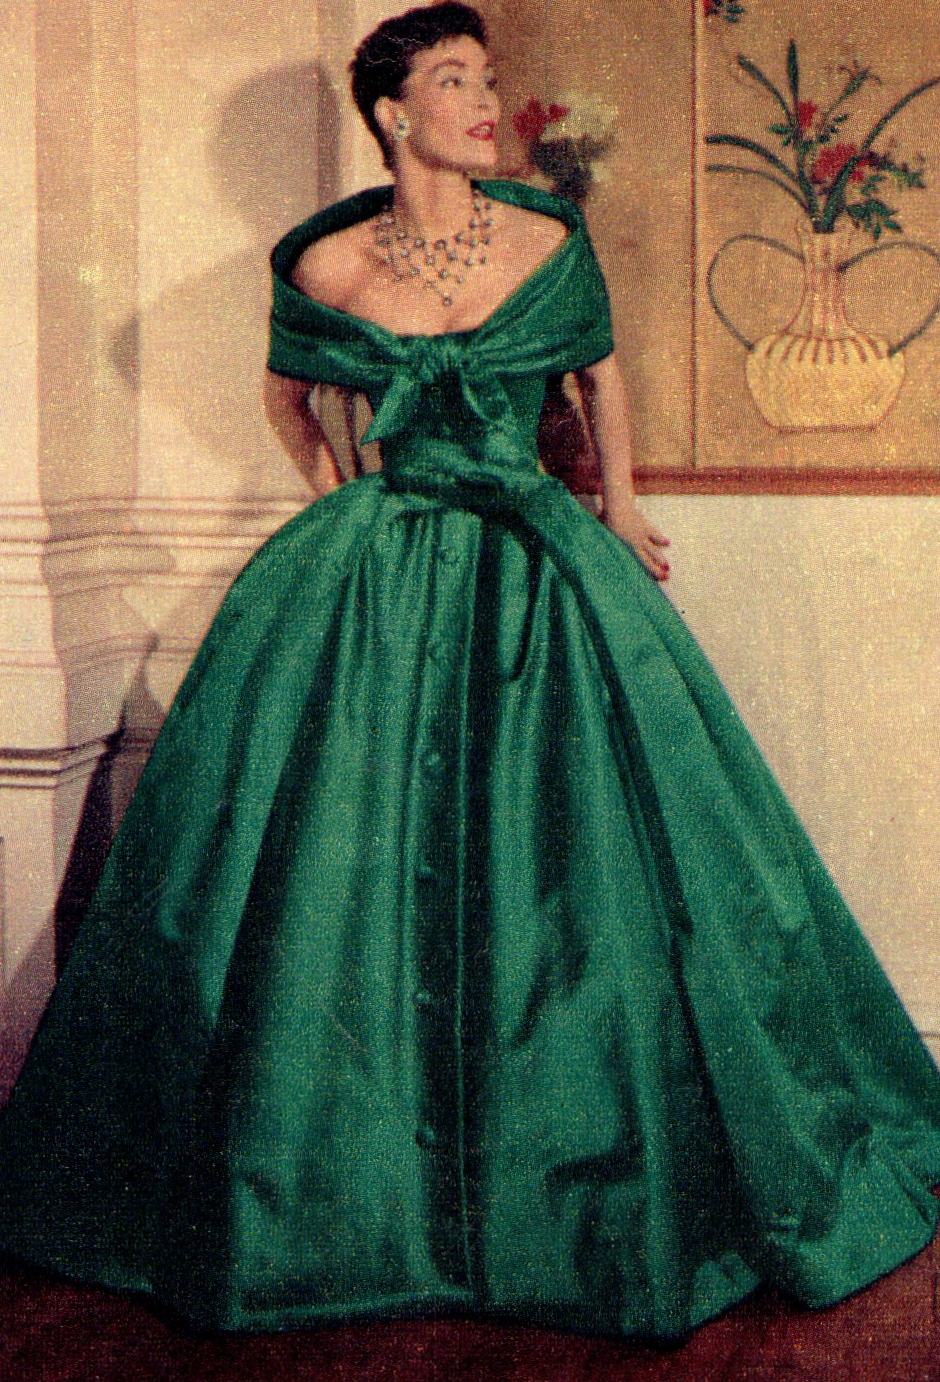 1950s Dreamy Dior gown in green satin. Vintage gowns